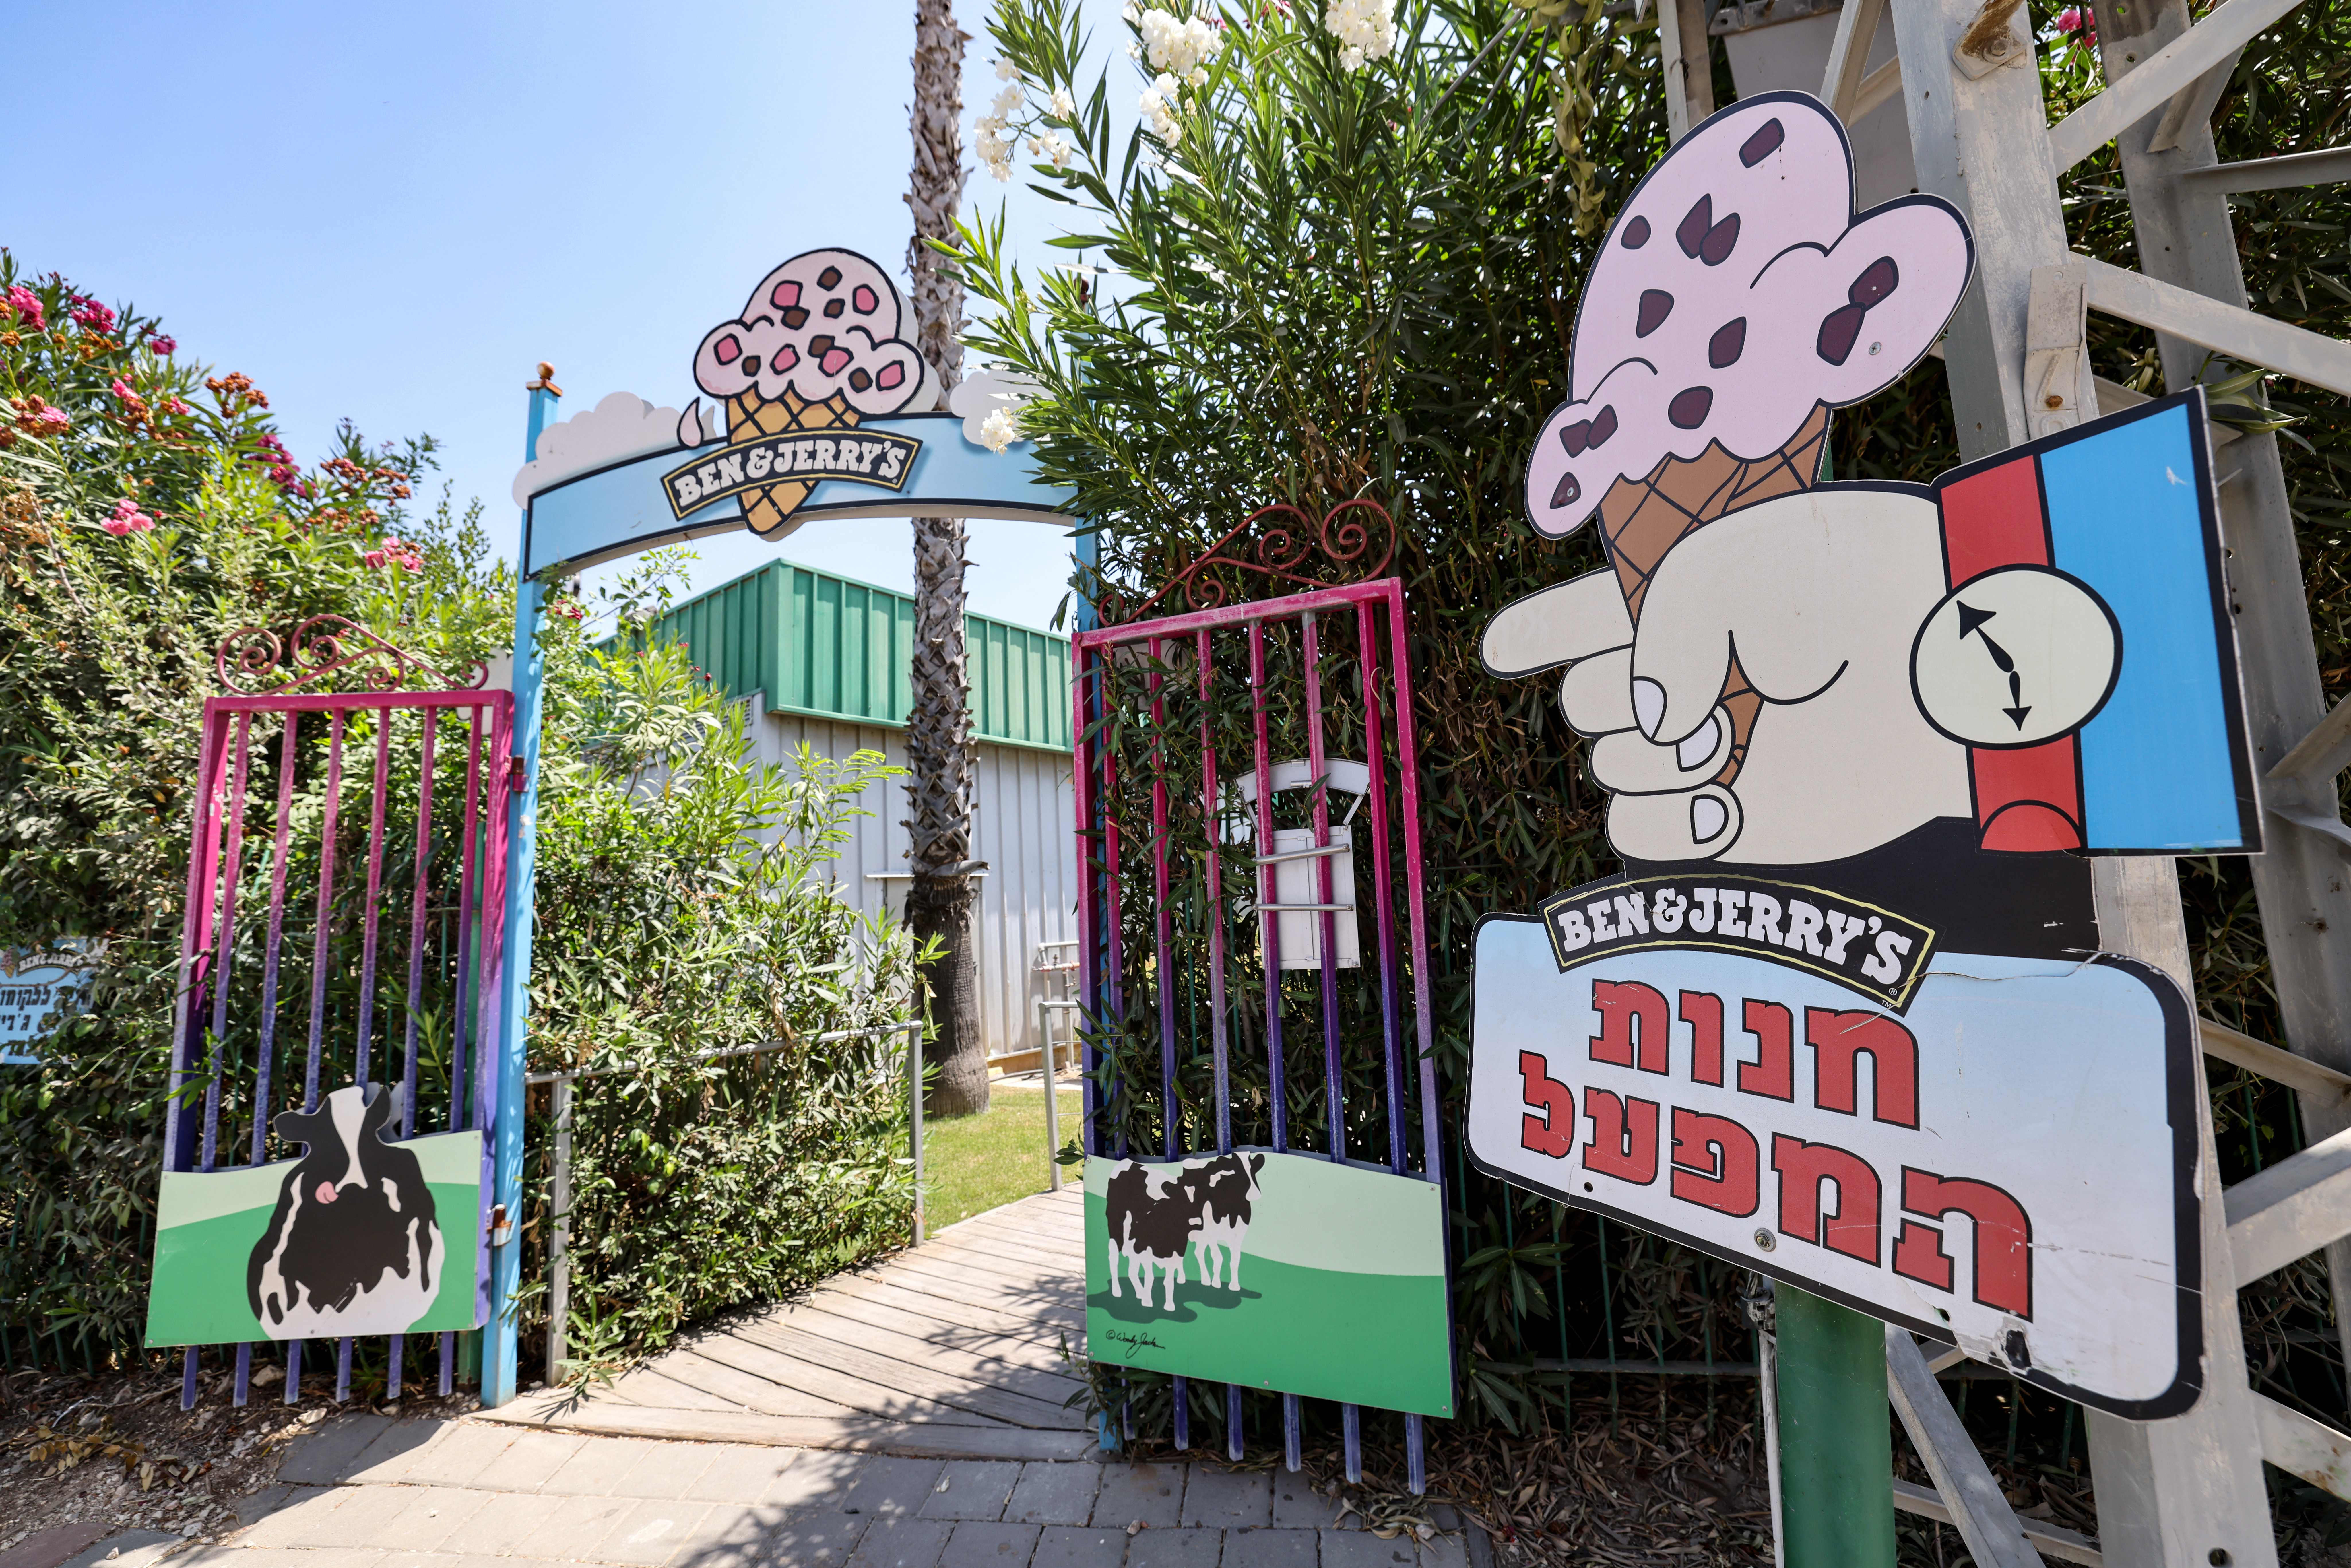 Texas and Florida get involved in Israel's fight with Ben & Jerry's over West Bank boycott